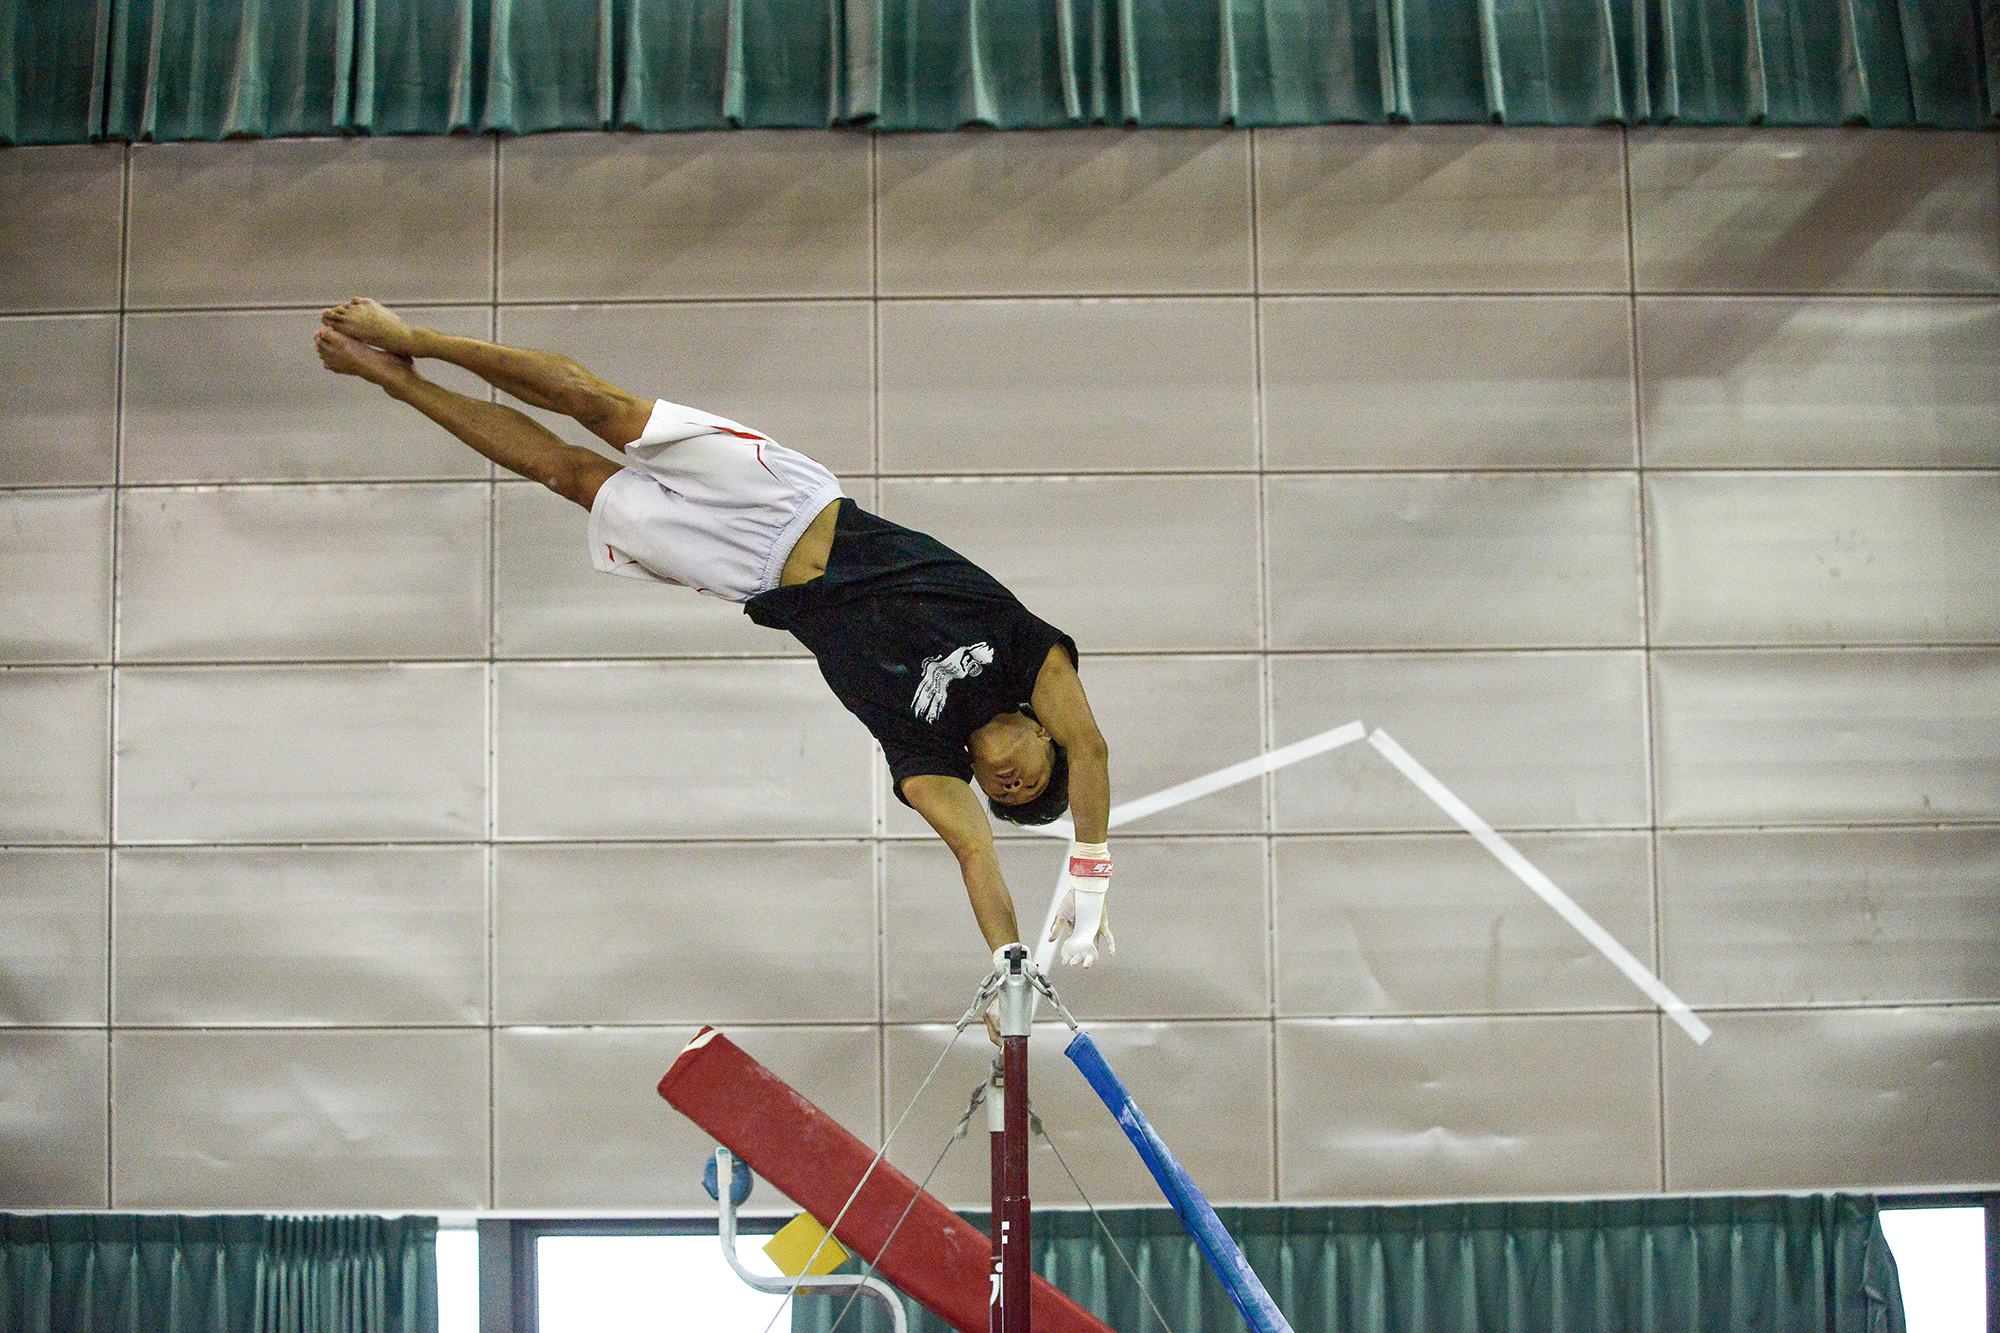 The youthful gymnast Tang Chia-hung, who will this year be competing in the Universiade for the first time, is especially adept at the high bar and the floor exercises. He most enjoys the feeling of flying through the air.